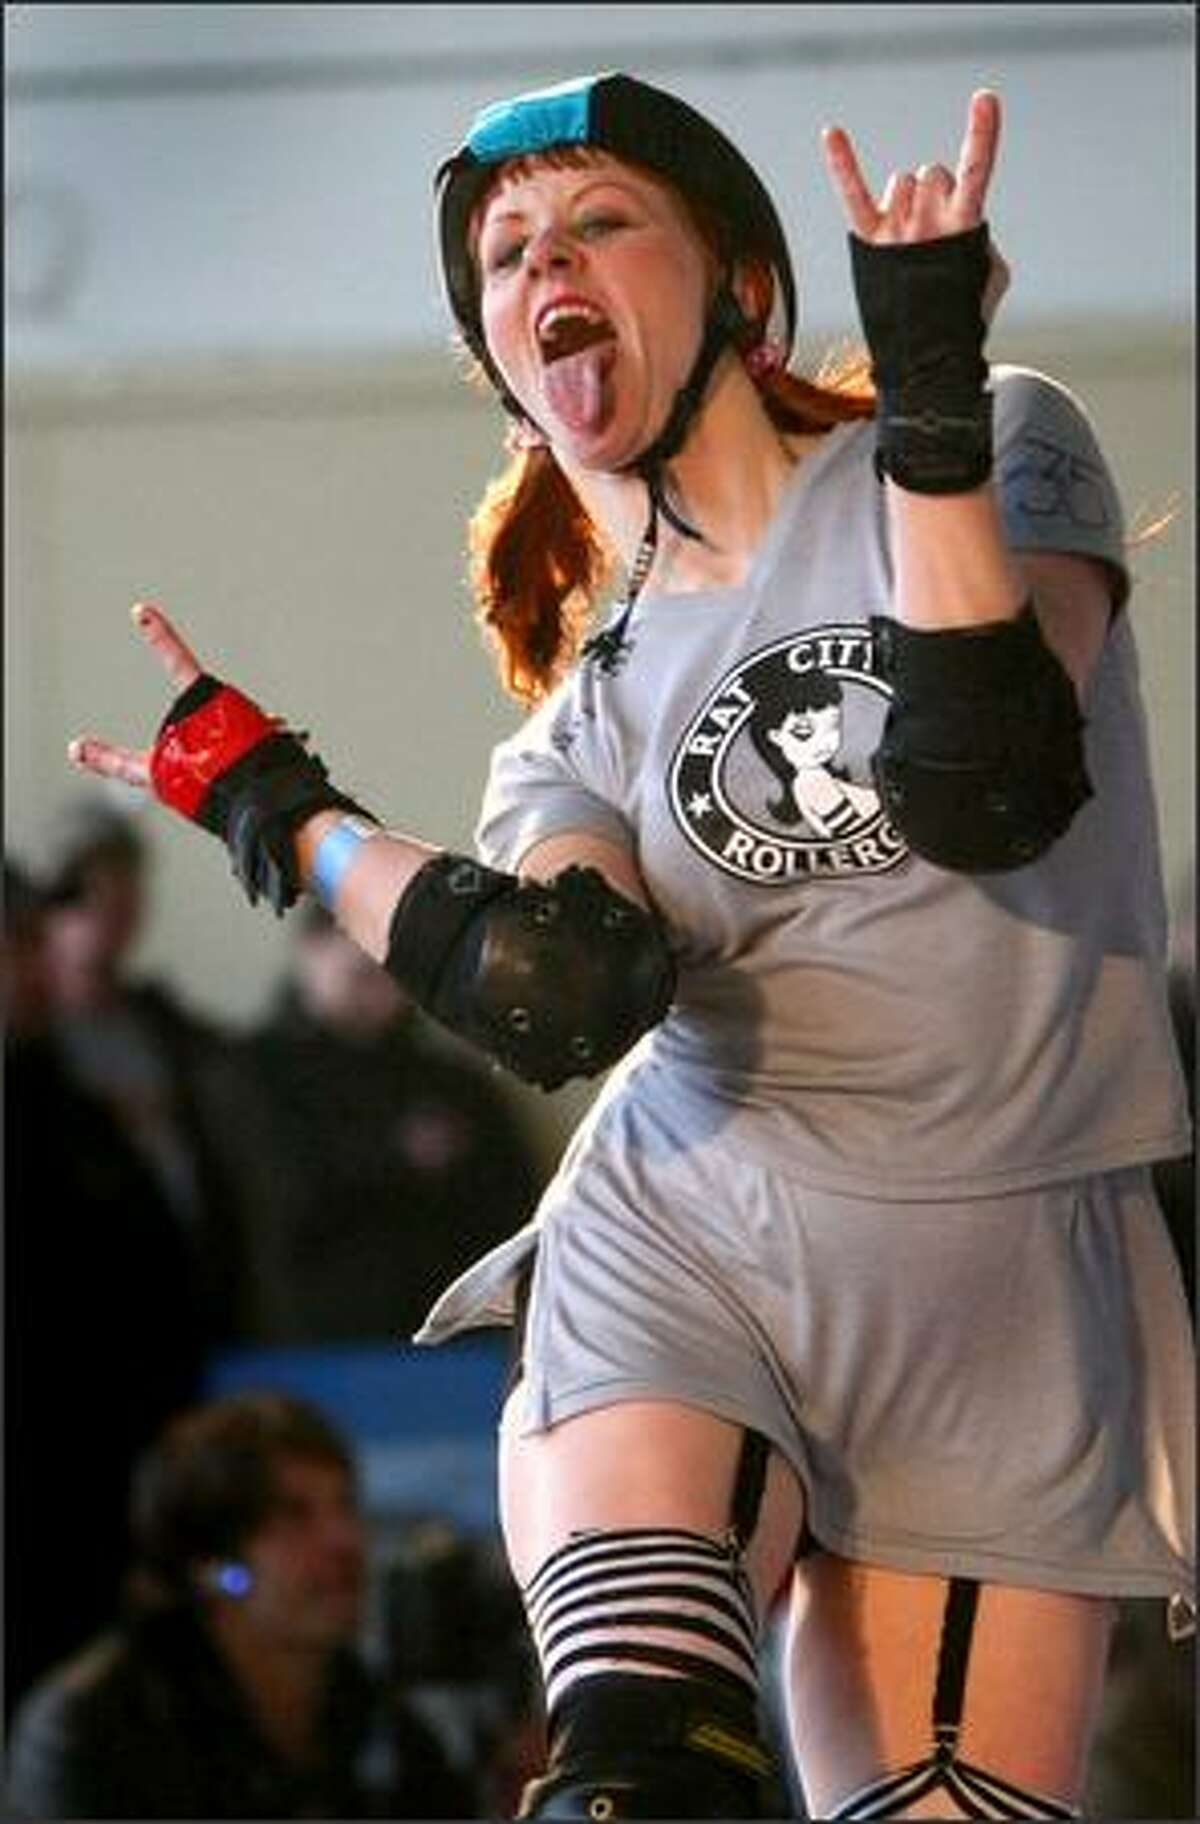 """""""mommacherry"""" has fun as she is sent to the penalty box during a match against Treasure Valley of Boise, Idaho, during the Seattle Rust Riot roller derby tournament at Magnuson Park in Seattle. The all-day, single-elimination event featured the Rat City Rollergirls' Rain of Terror from Seattle, the Jet City Rollergirls from Everett, the Lava City Roller Dolls from Bend, Ore., the Lilac City Rollergirls from Spokane, the Oly Rollers from Olympia, the Rose City Rollers from Portland, the Slaughter County Roller Vixens from Bremerton and the Treasure Valley Rollergirls from Boise, Idaho."""